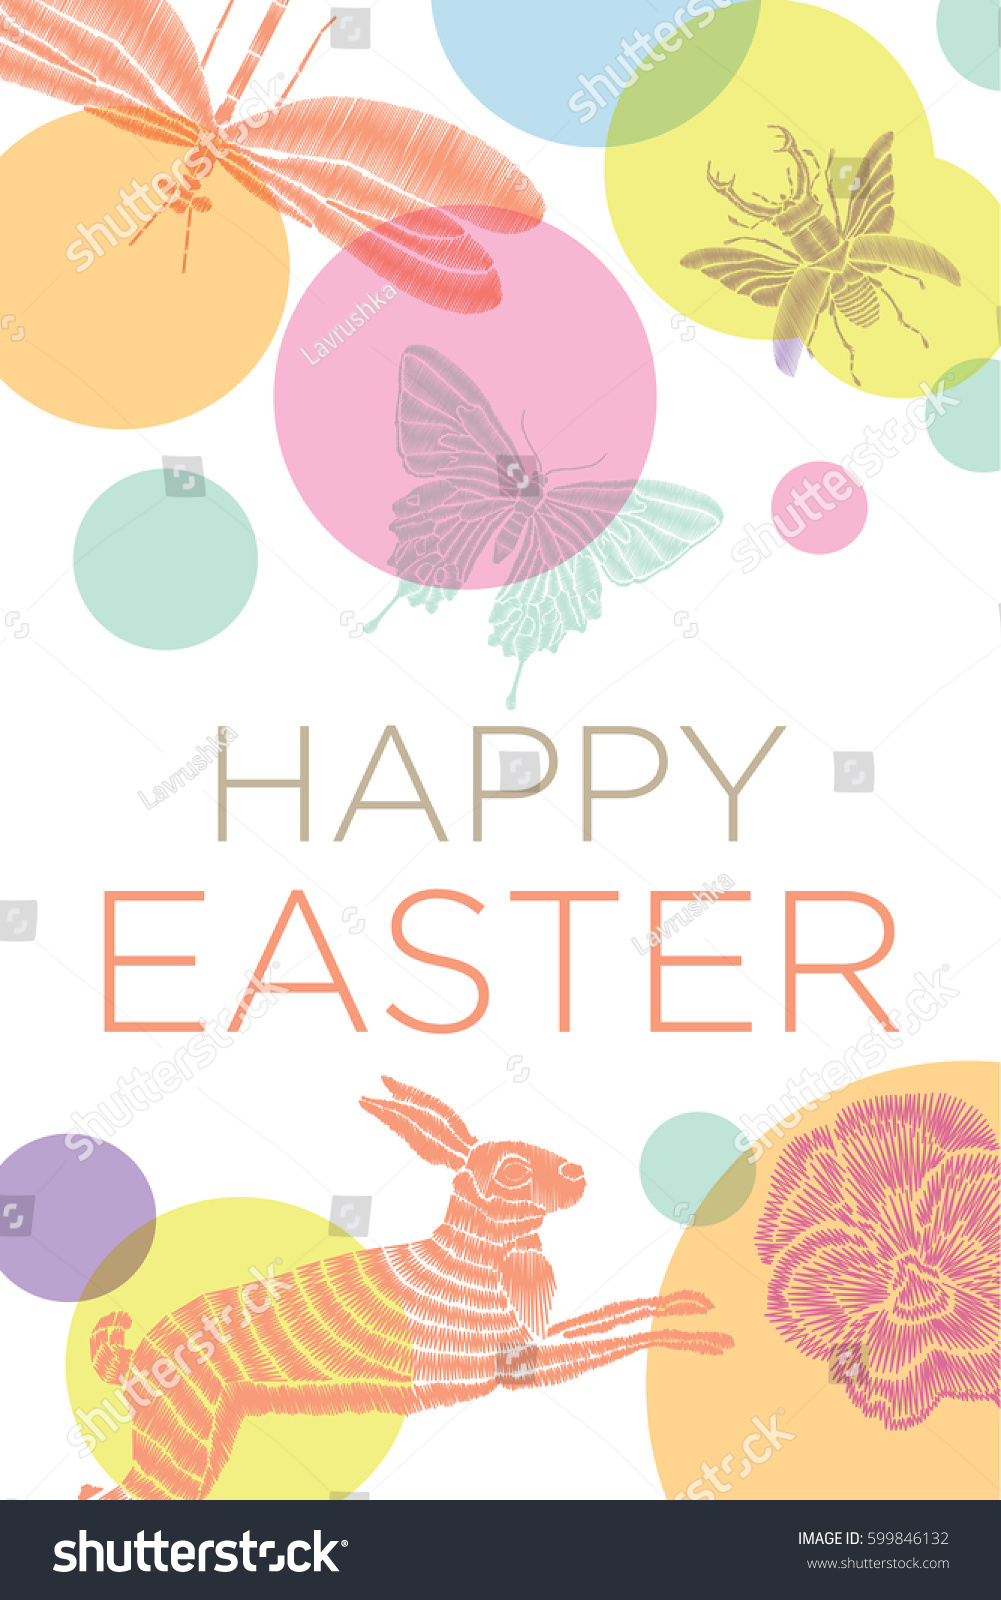 Easter Greetings Card Vector Illustration Easter Stock Vector